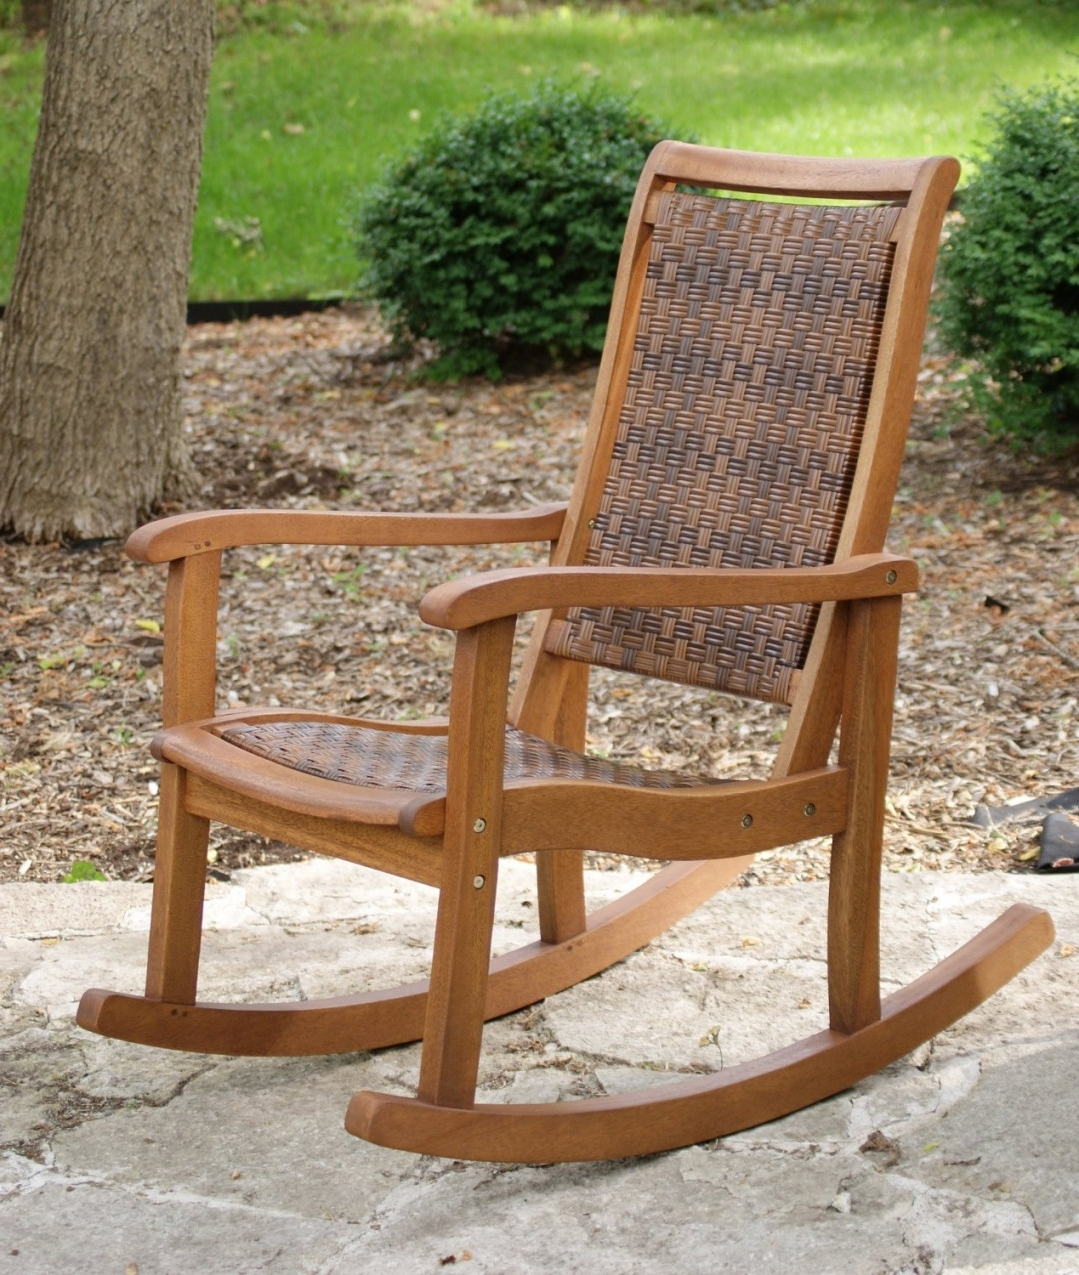 Most Recent Great Patio Rocking Chairs : Spectacular And Sensational Patio For Wooden Patio Rocking Chairs (View 9 of 15)